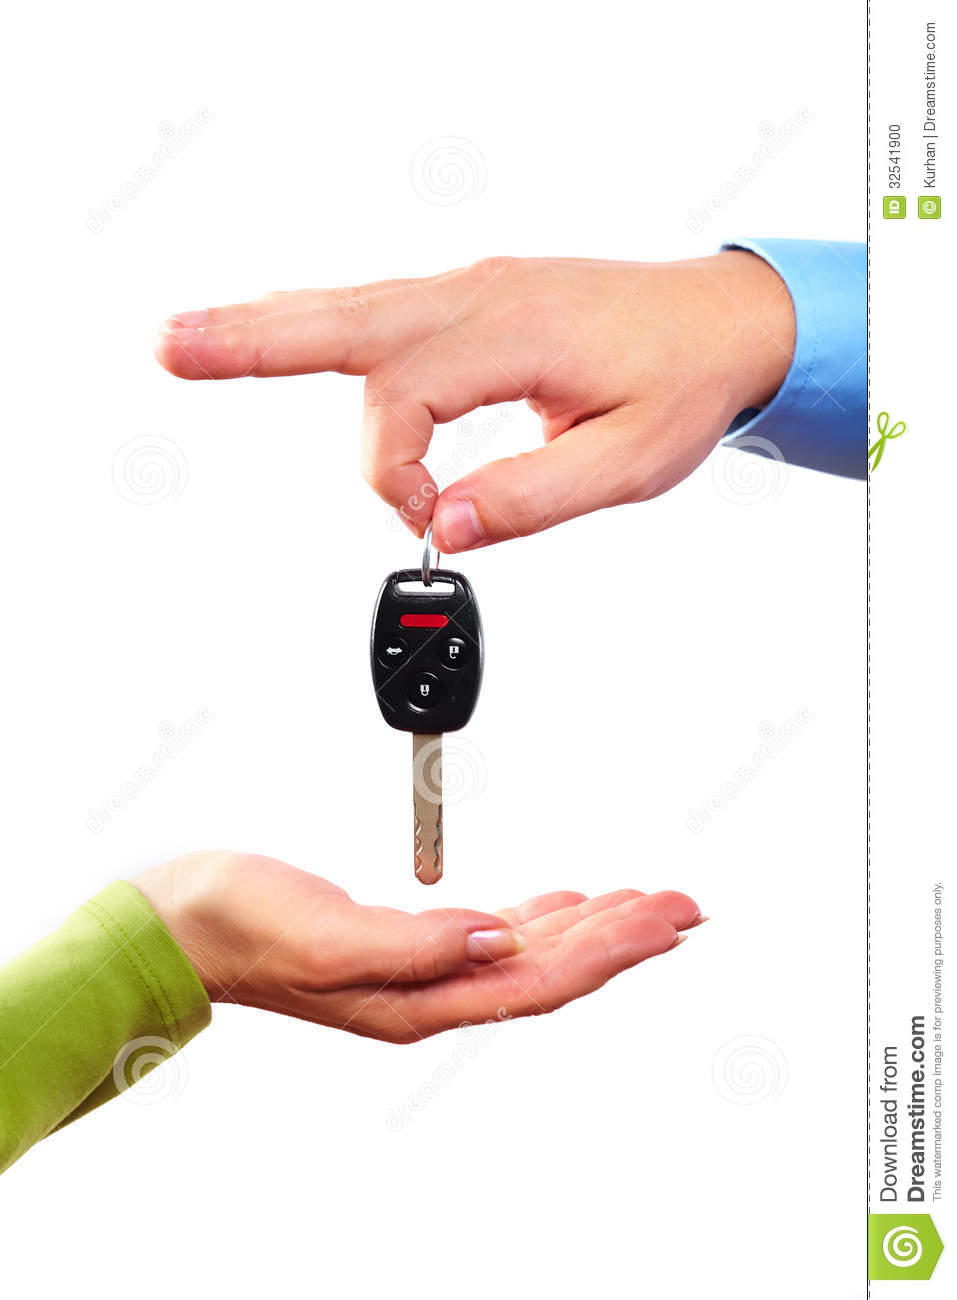 Stock Photo Hand Car Key Isolated White Background Image32541900 on man opening car door